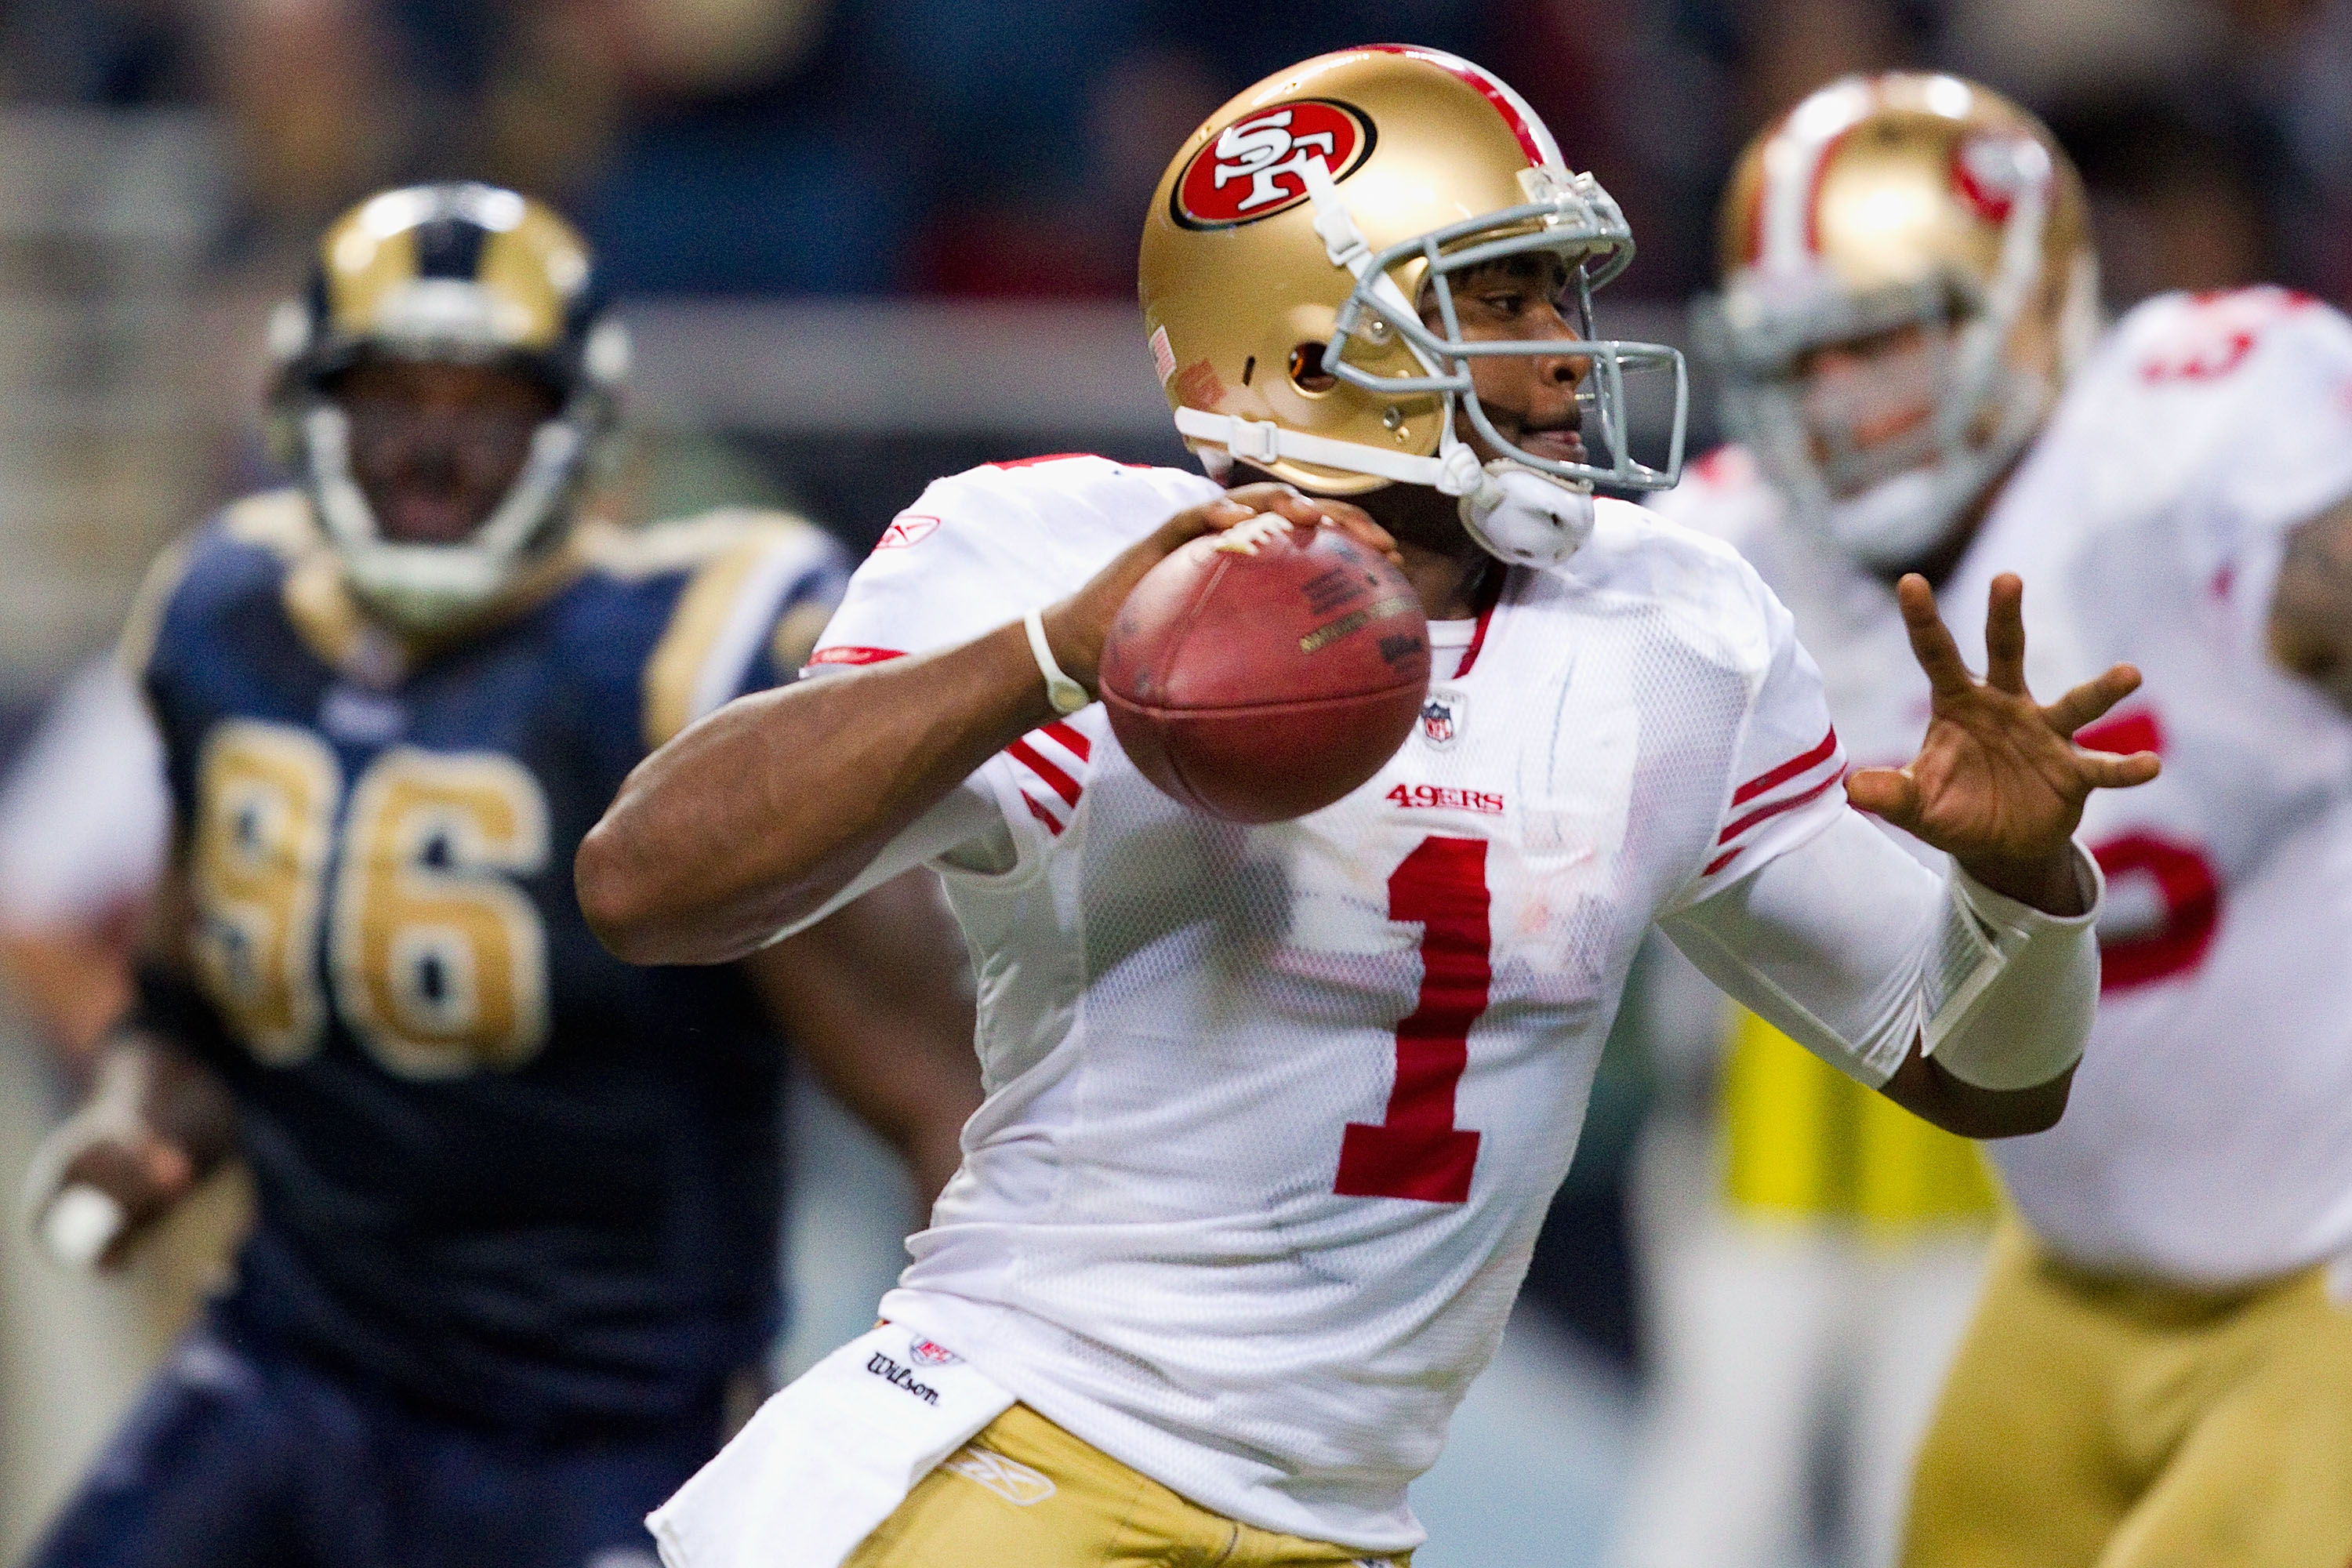 ST. LOUIS, MO - DECEMBER 26: Troy Smith #1 of the San Francisco 49ers looks to pass against the St. Louis Rams at the Edward Jones Dome on December 26, 2010 in St. Louis, Missouri. The Rams beat the 49ers 25-17. (Photo by Dilip Vishwanat/Getty Images)